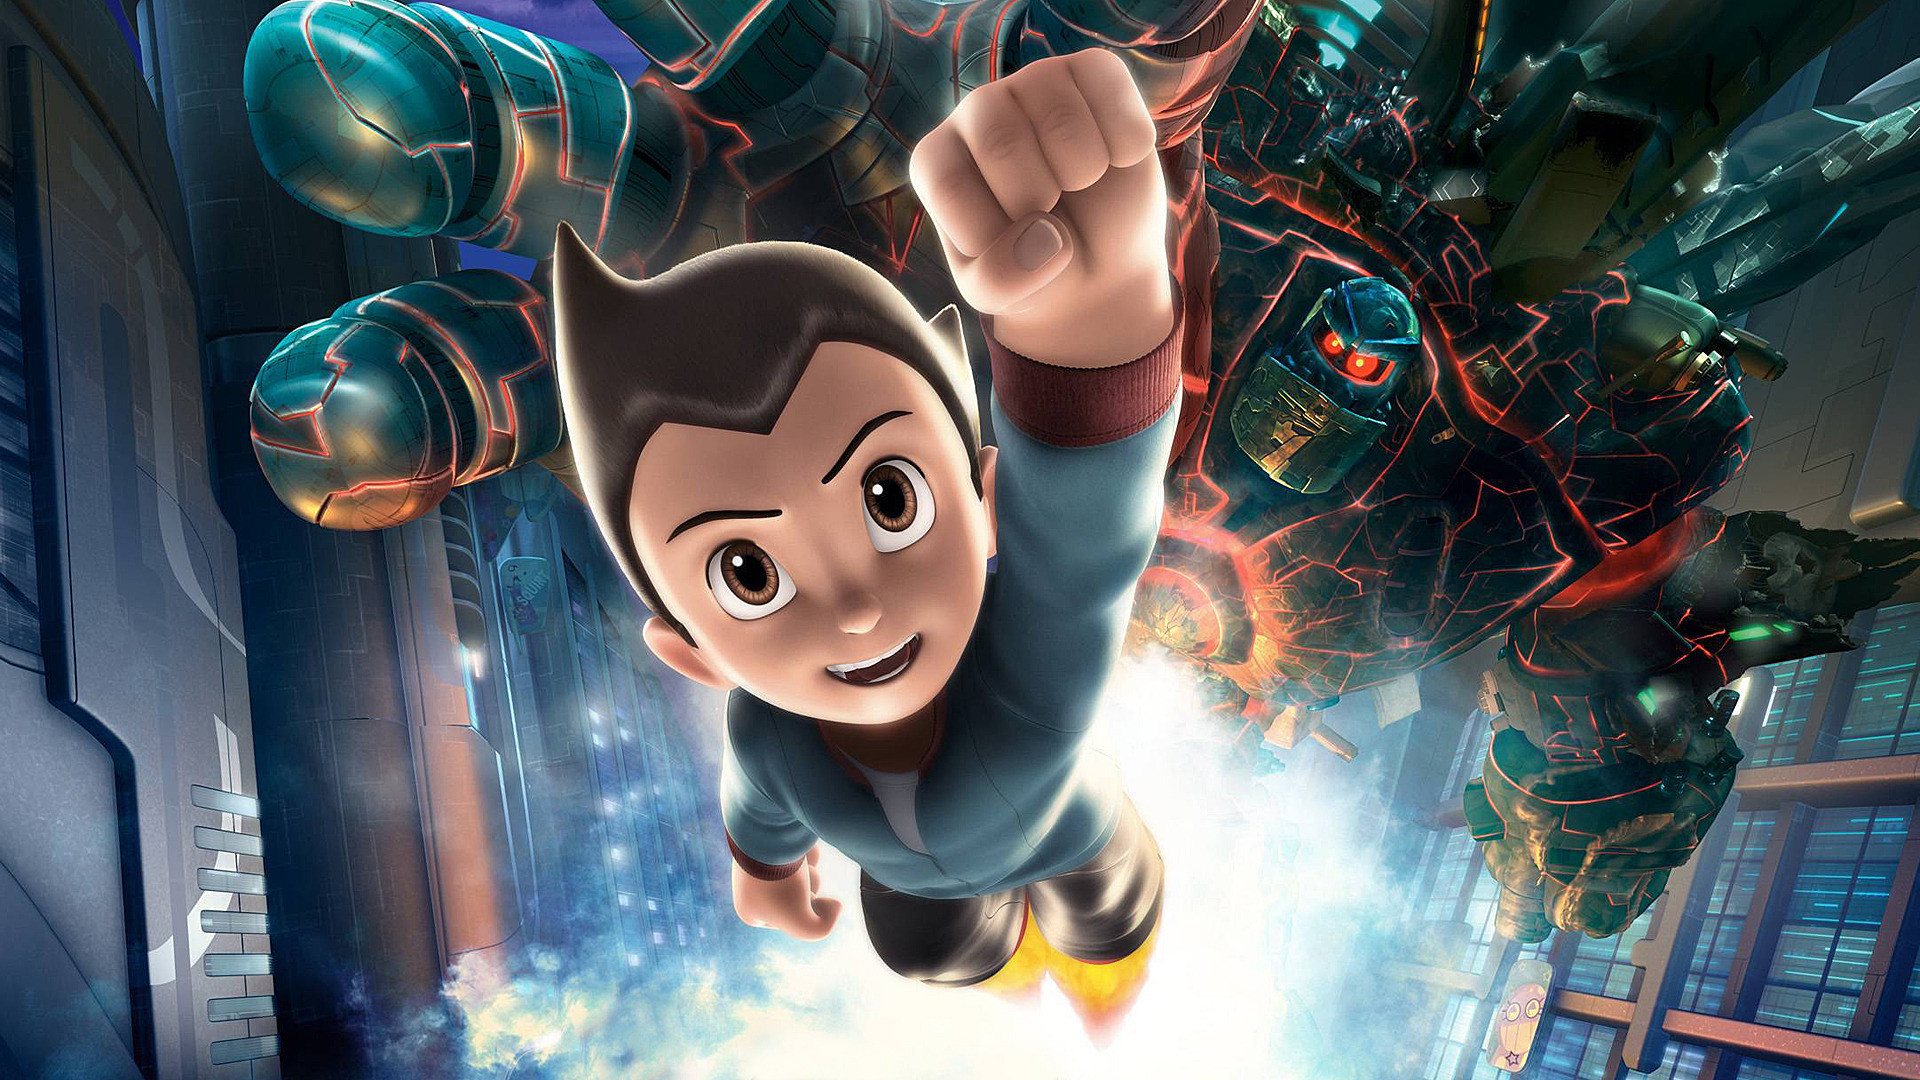 Astro boy is flying back to the big screen this time in live action animal logic the animation and effects studio behind avengers age of ultron and the